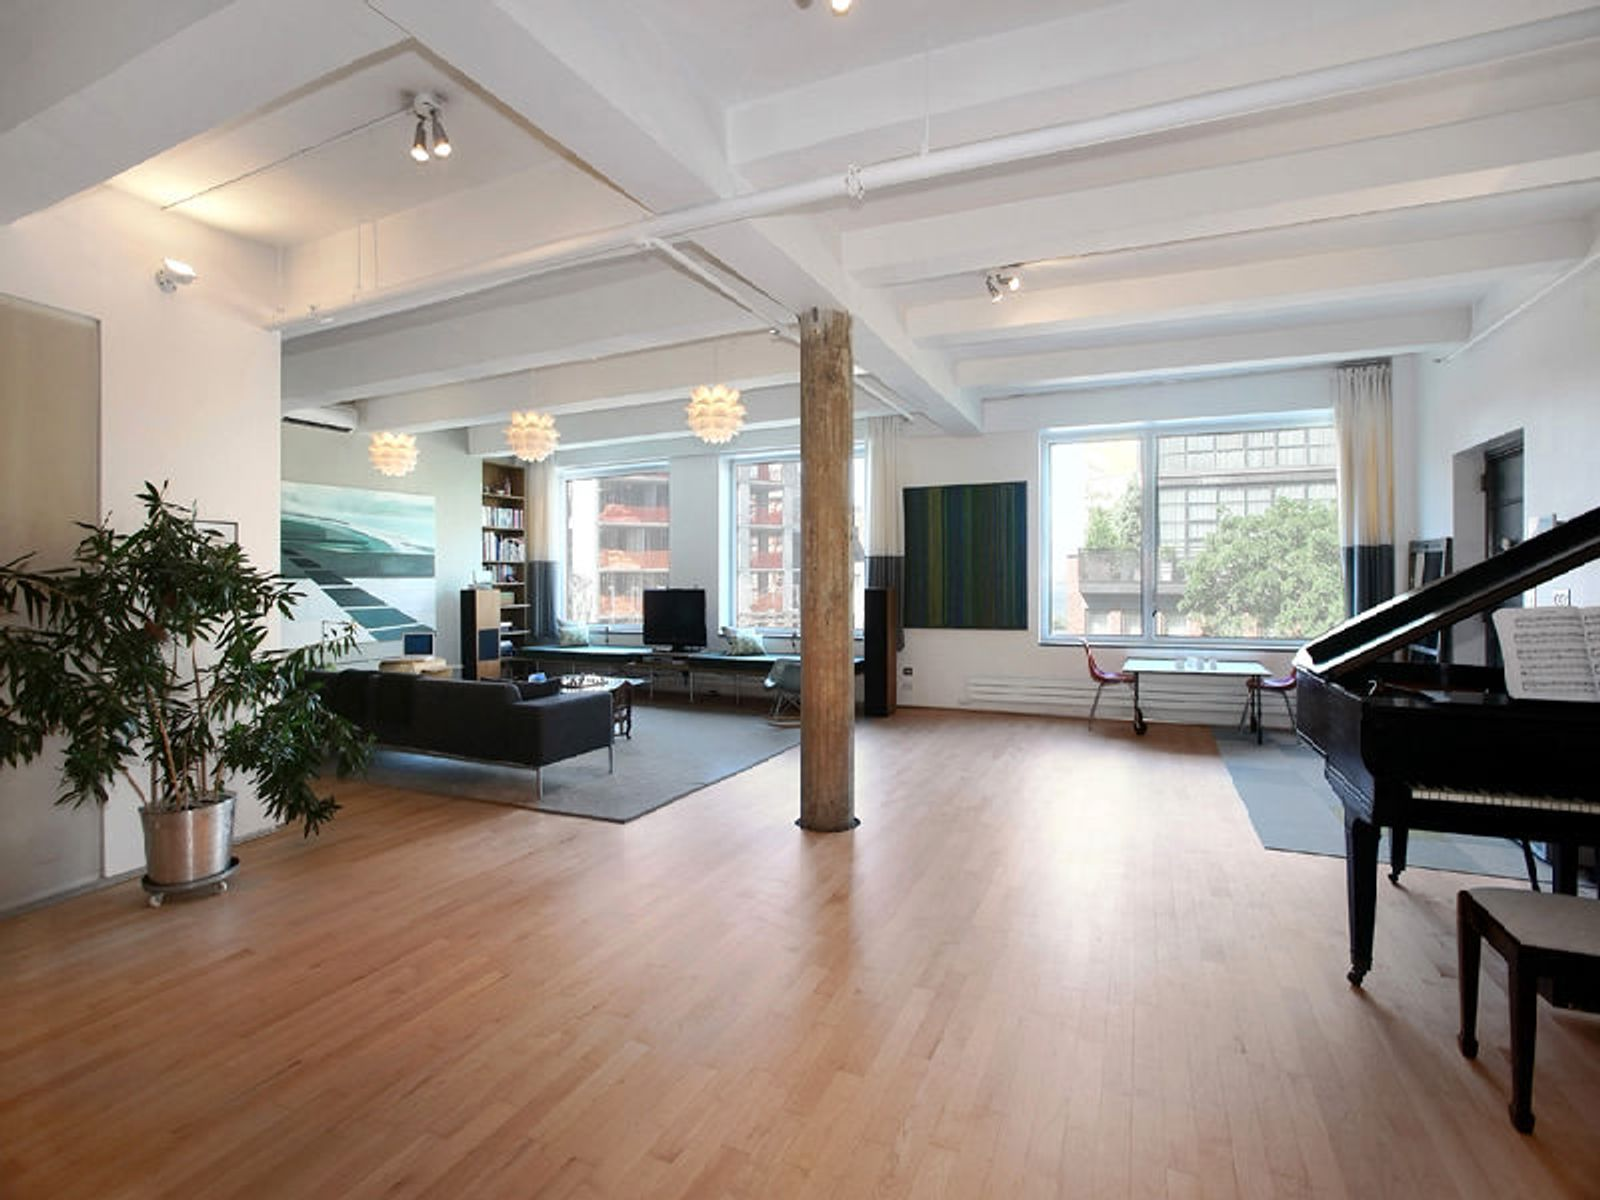 487 Greenwich St, 4A, New York NY Condominium - New York City Real Estate